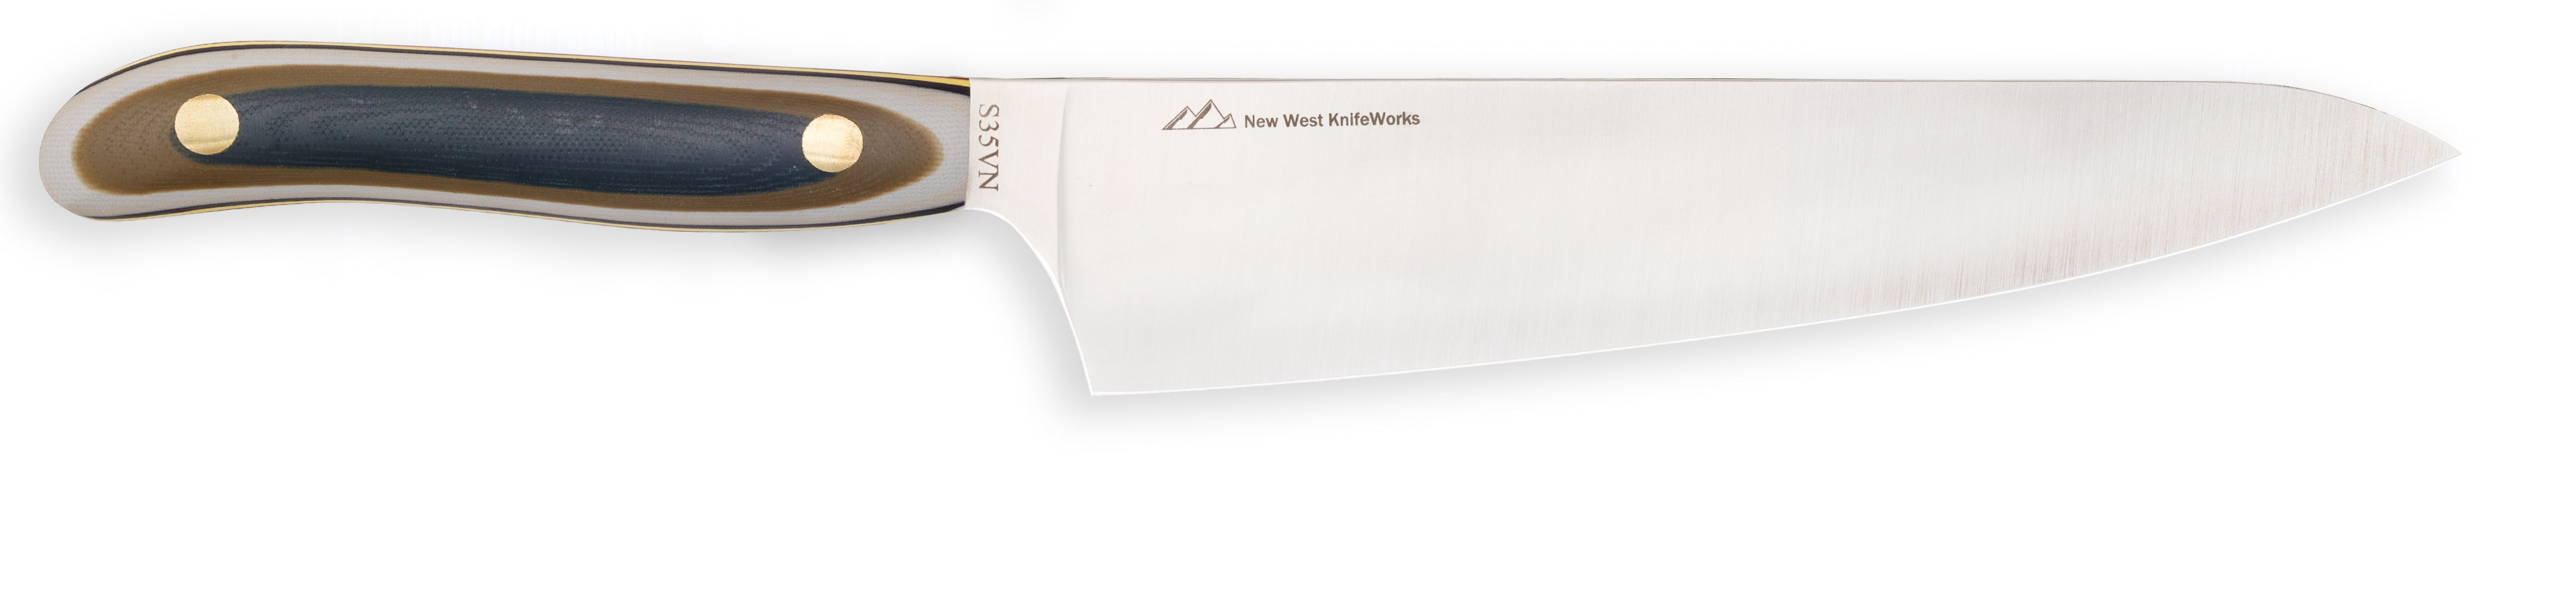 Americas Best Chef Knives 9 Inch